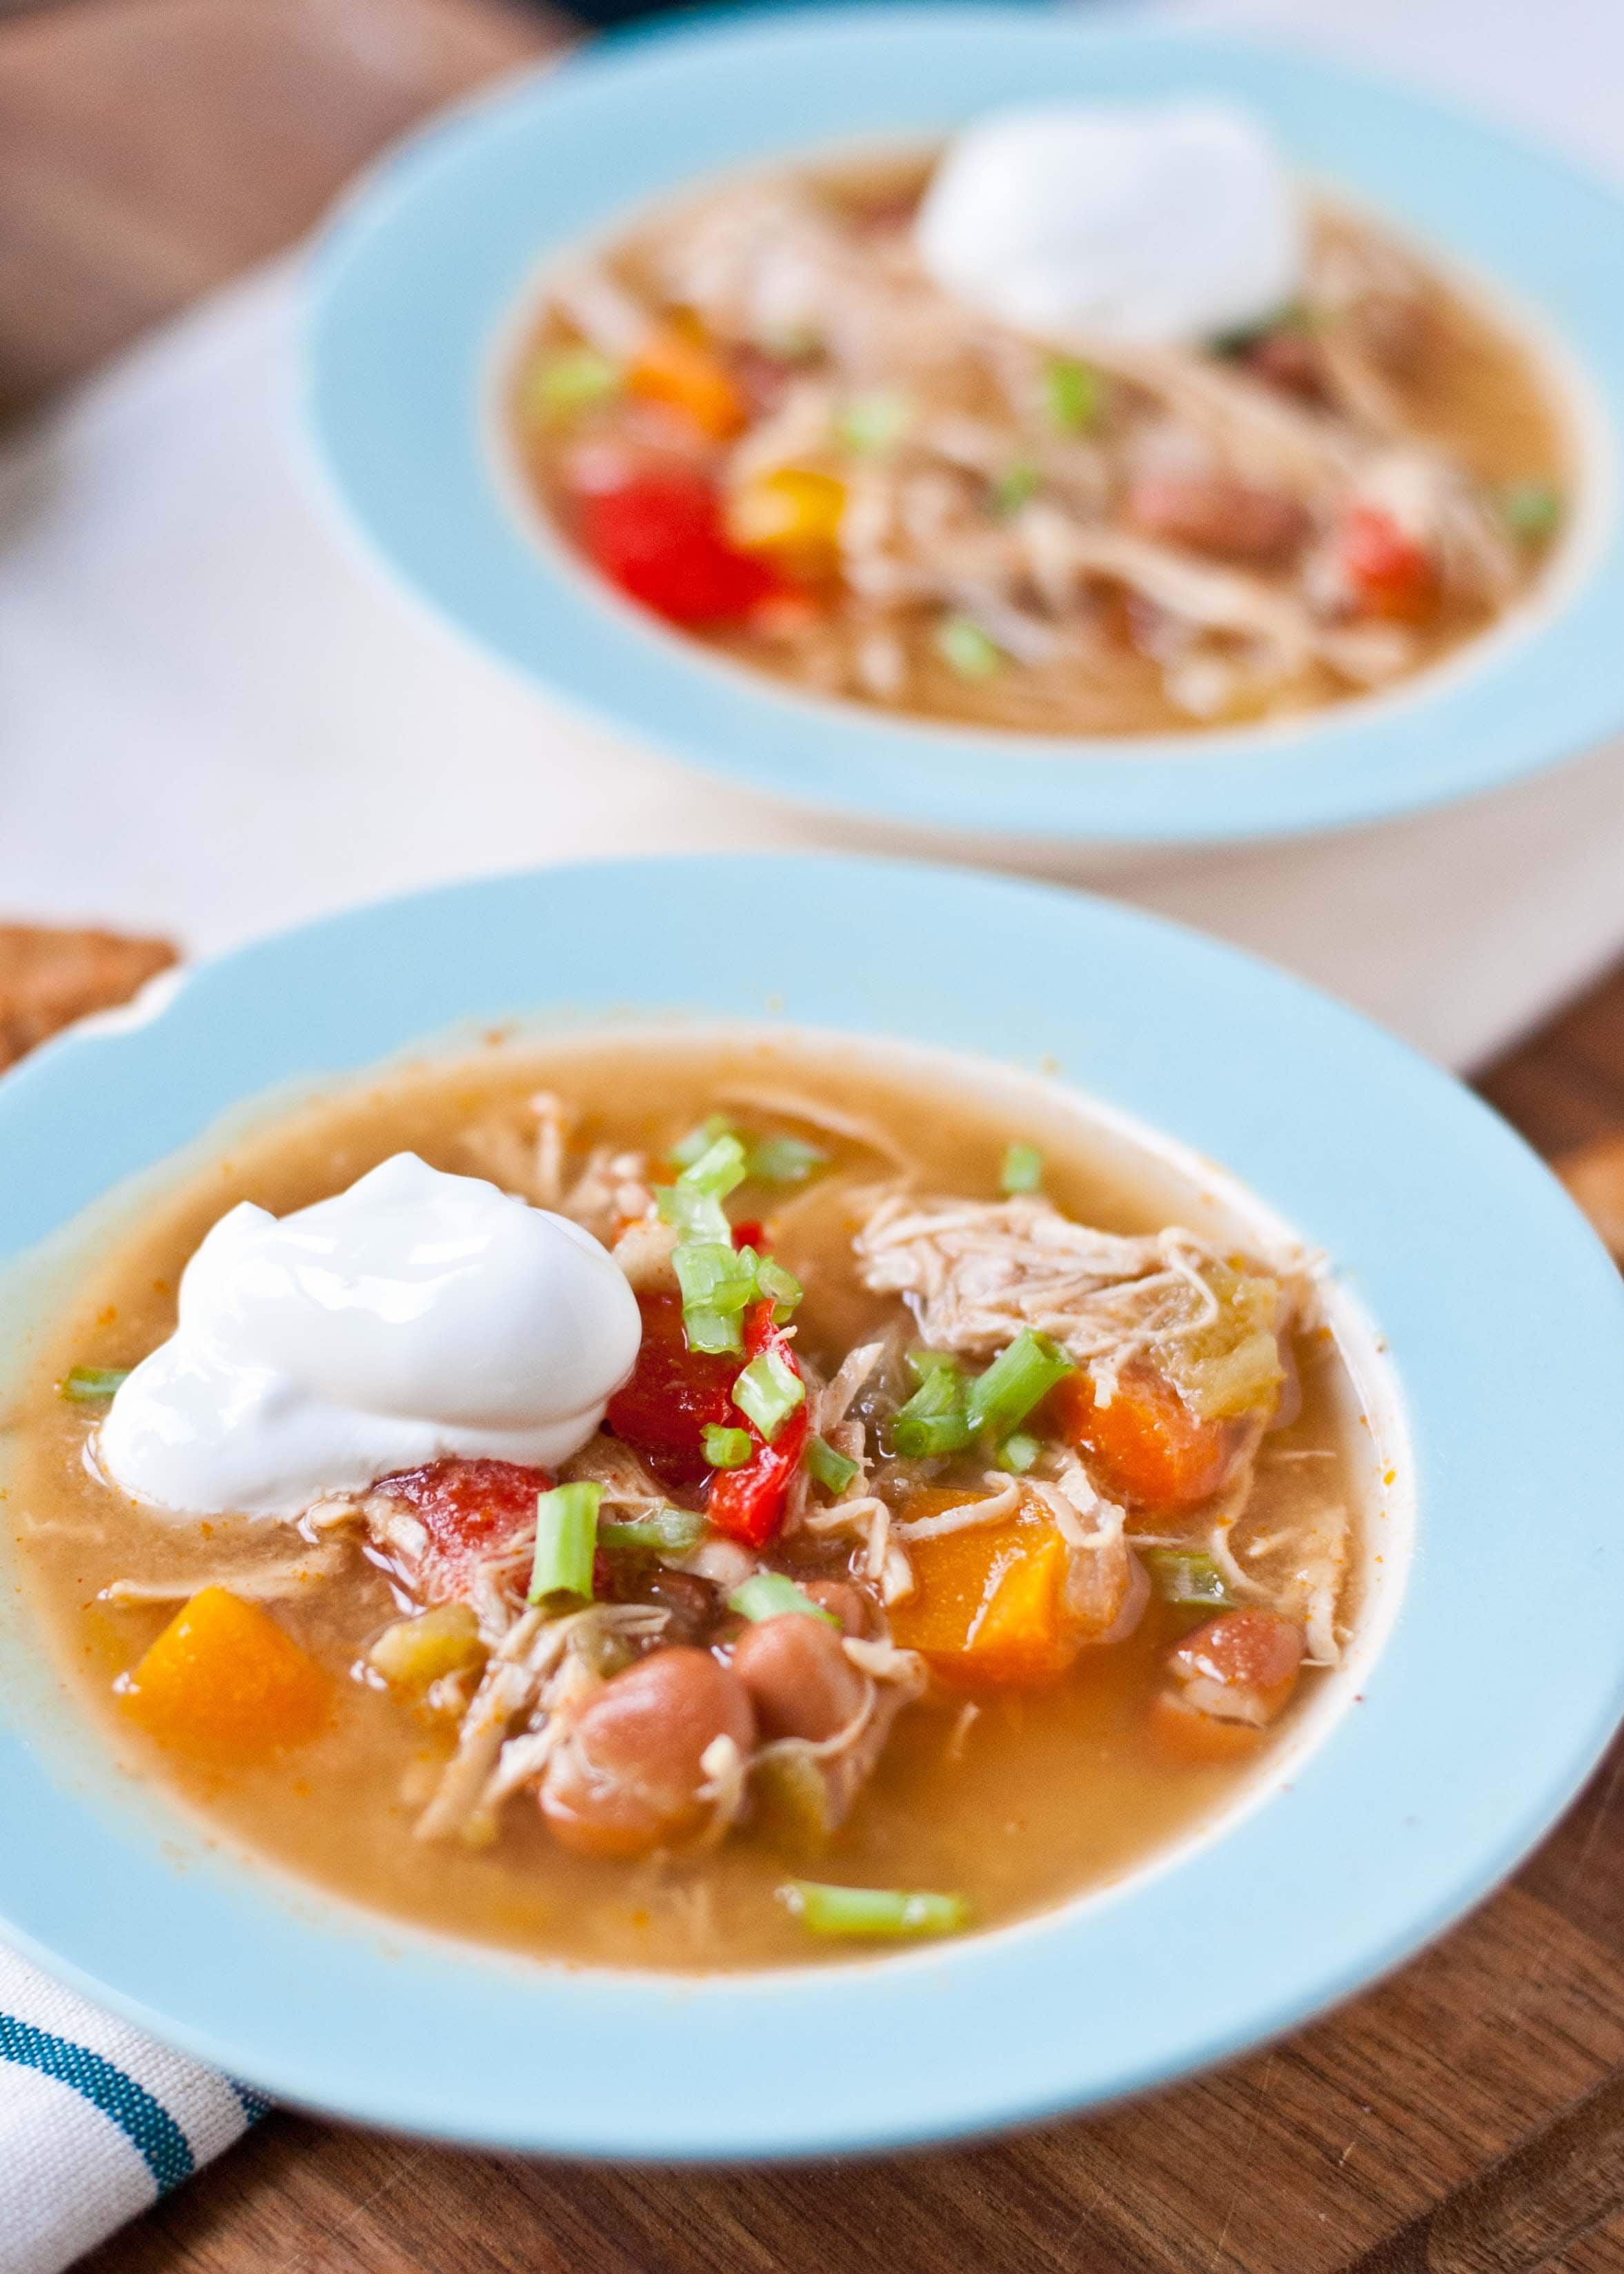 Warm, comforting Slow Cooker White Chicken Chili--an easy weeknight meal!